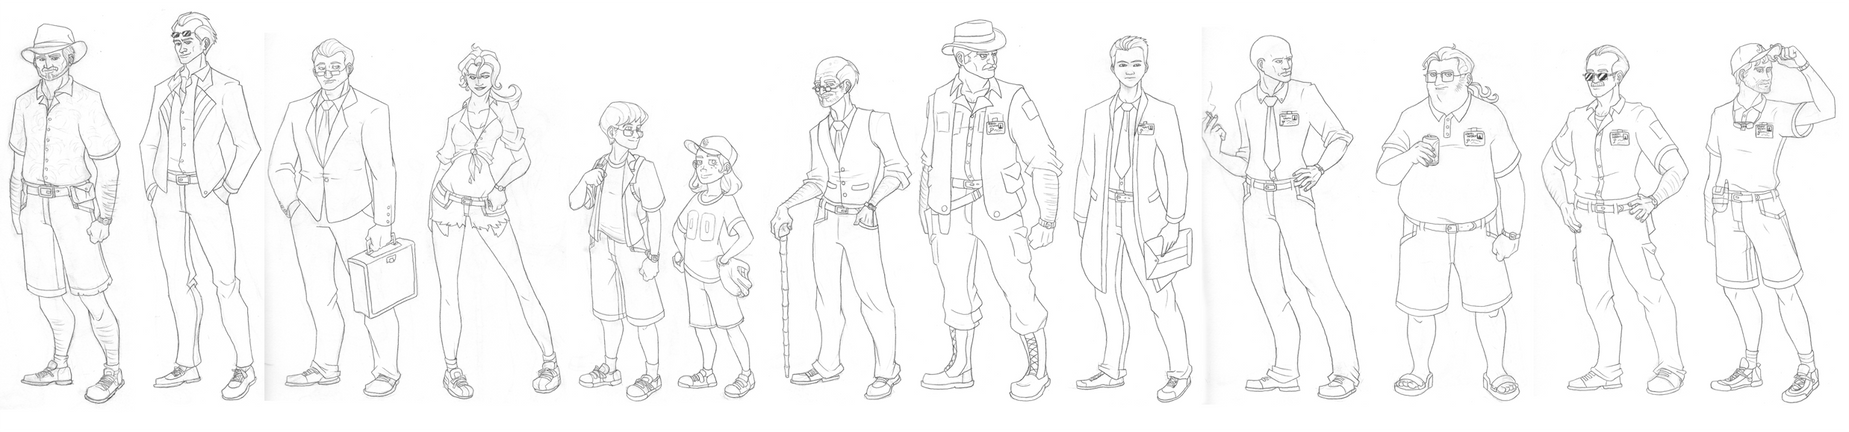 characters_from_the_jurassic_park_novel_by_green_mamba-d4tlajf.png